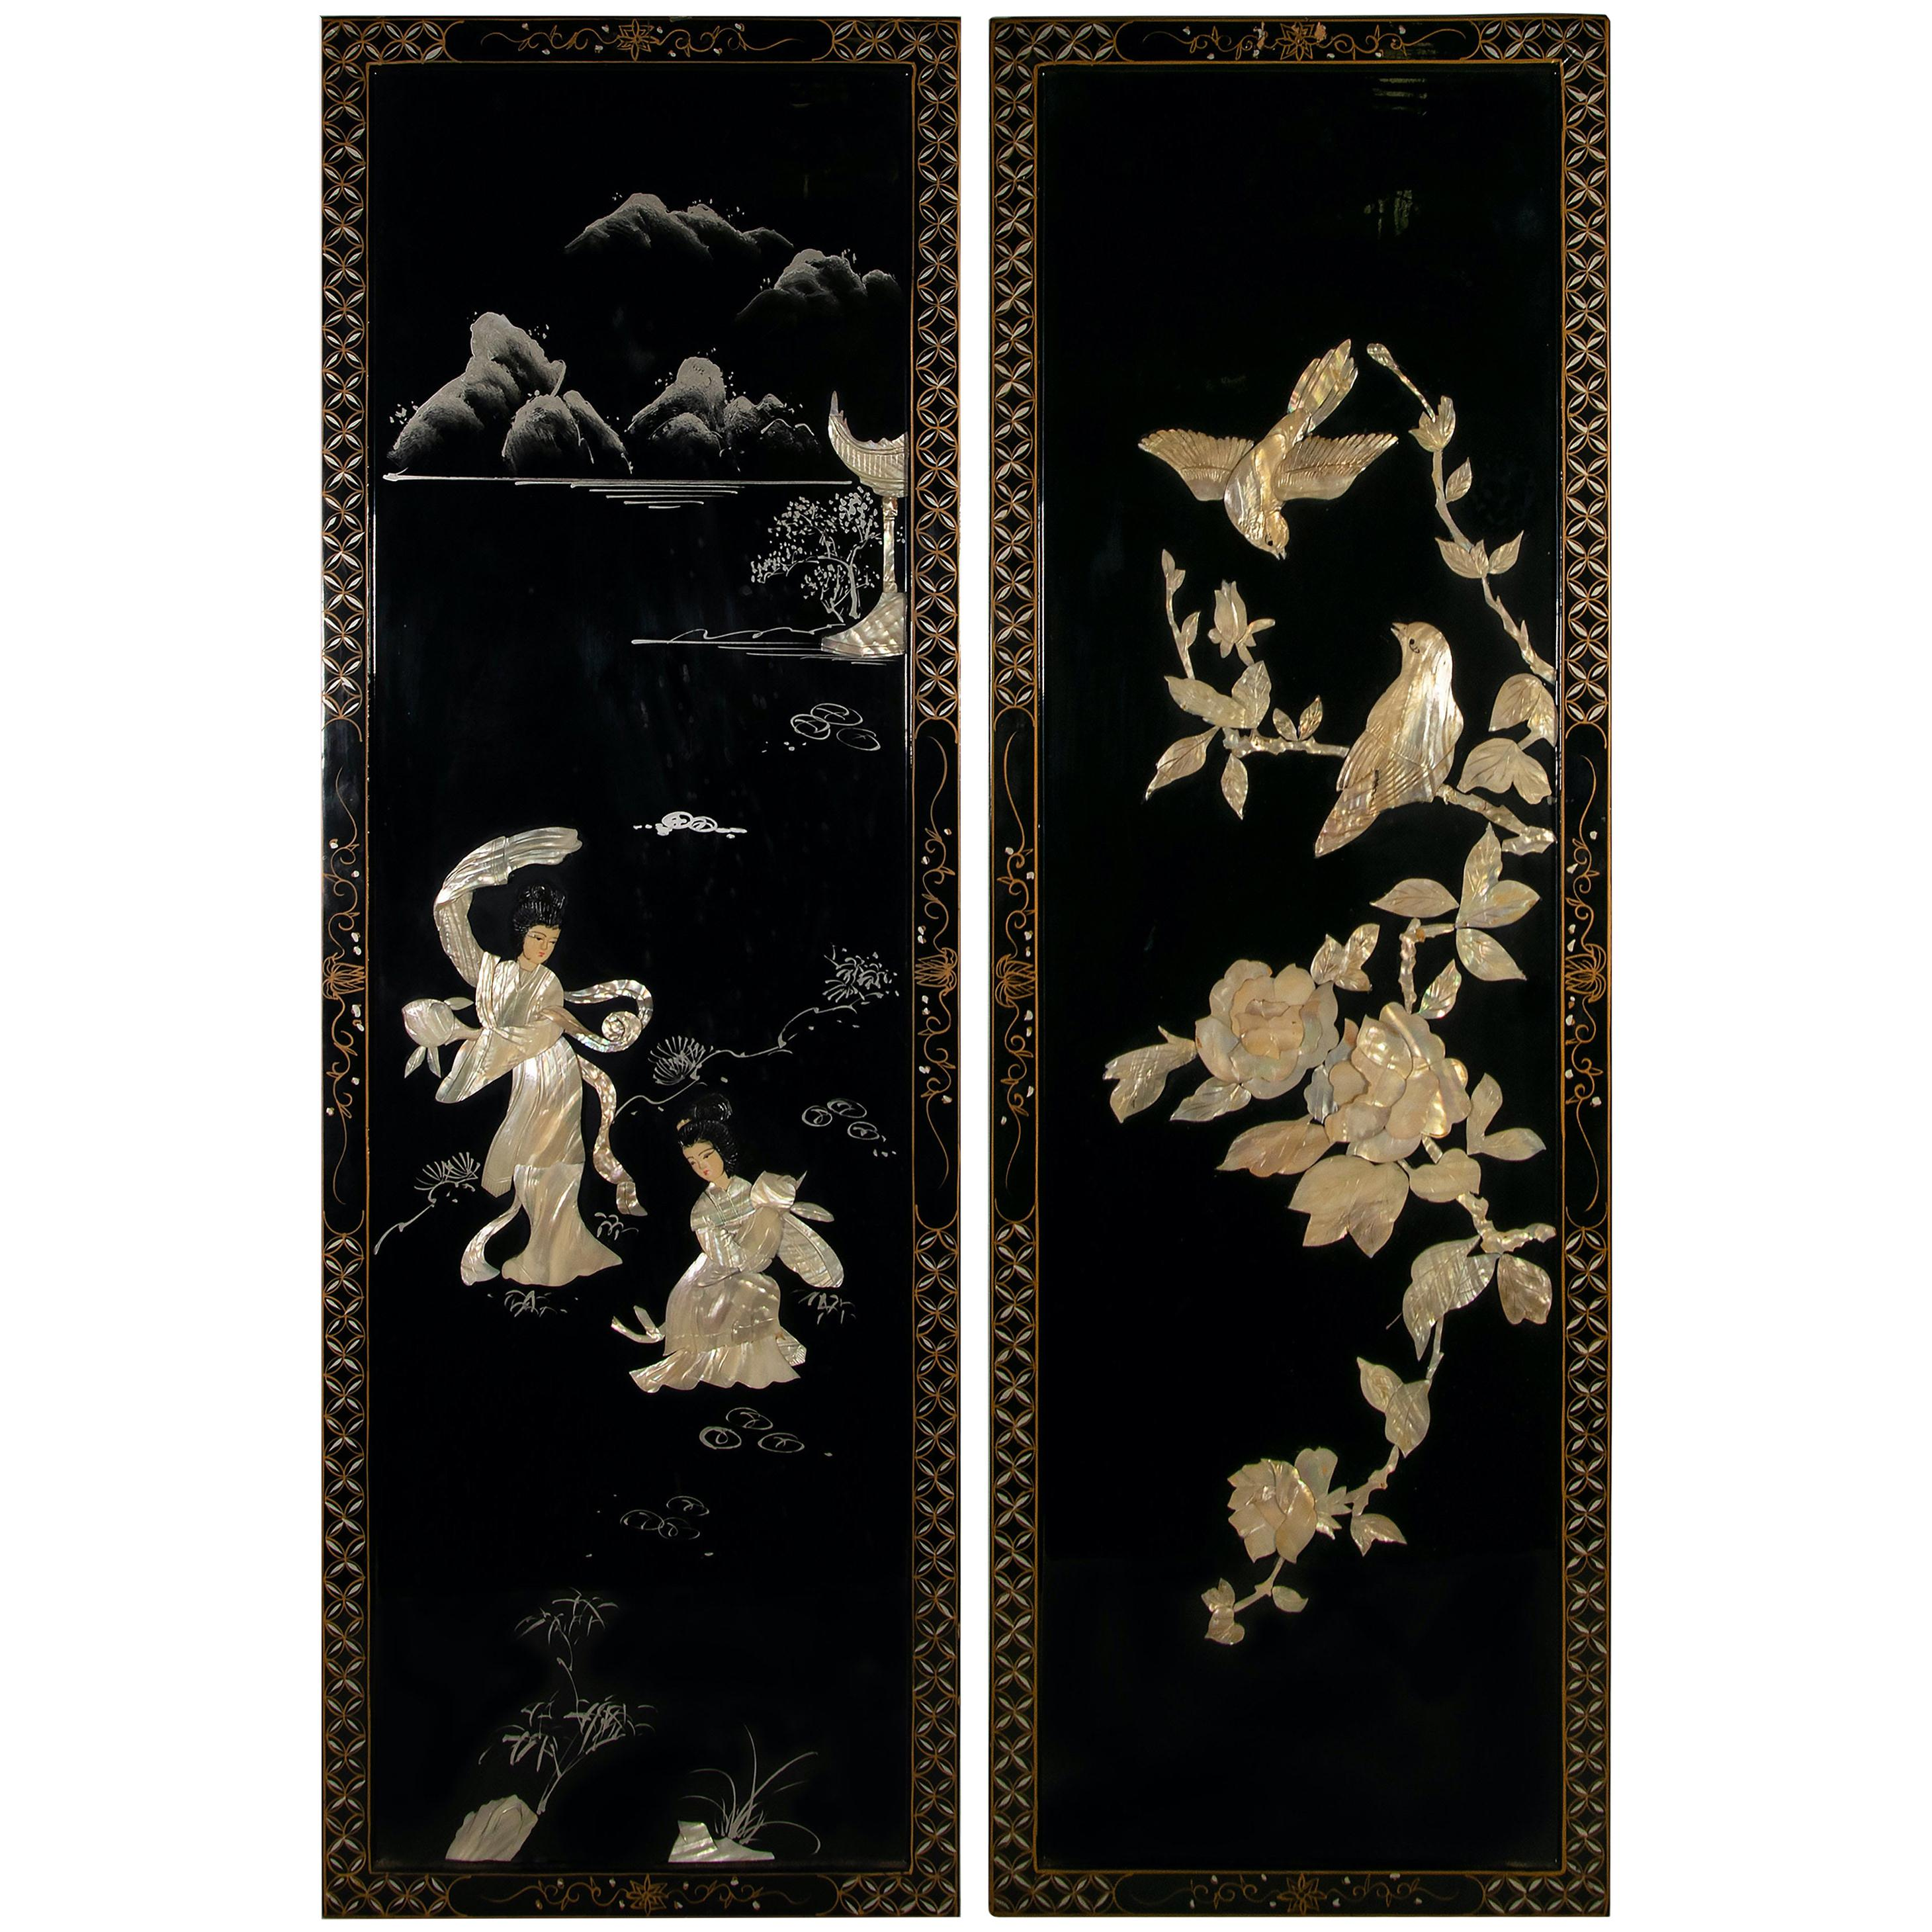 Vintage Pair of Decorative Panels, China, 20th Century